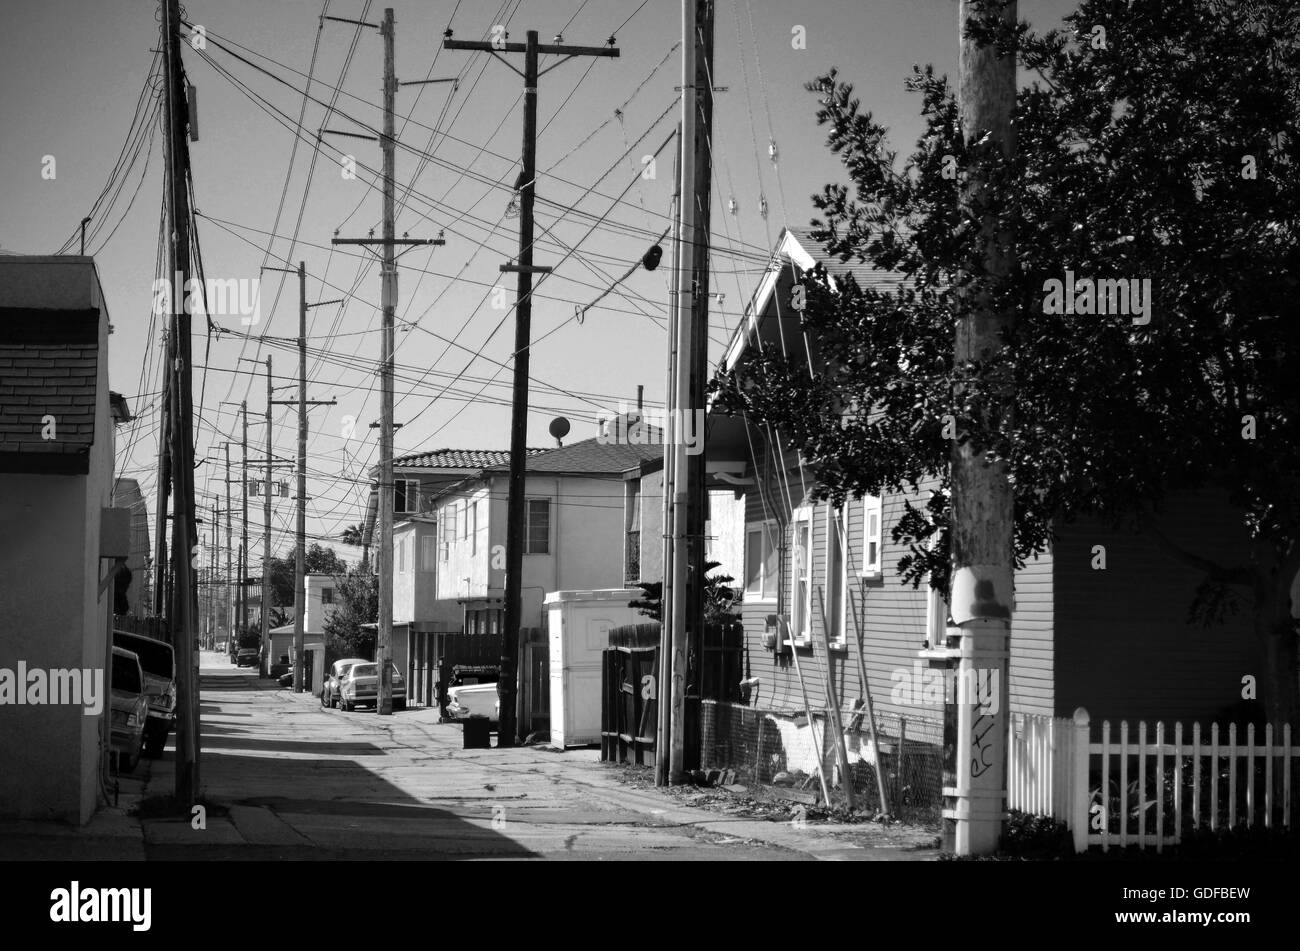 Alley Wires Telephone Lines Stock Photos & Alley Wires Telephone ...